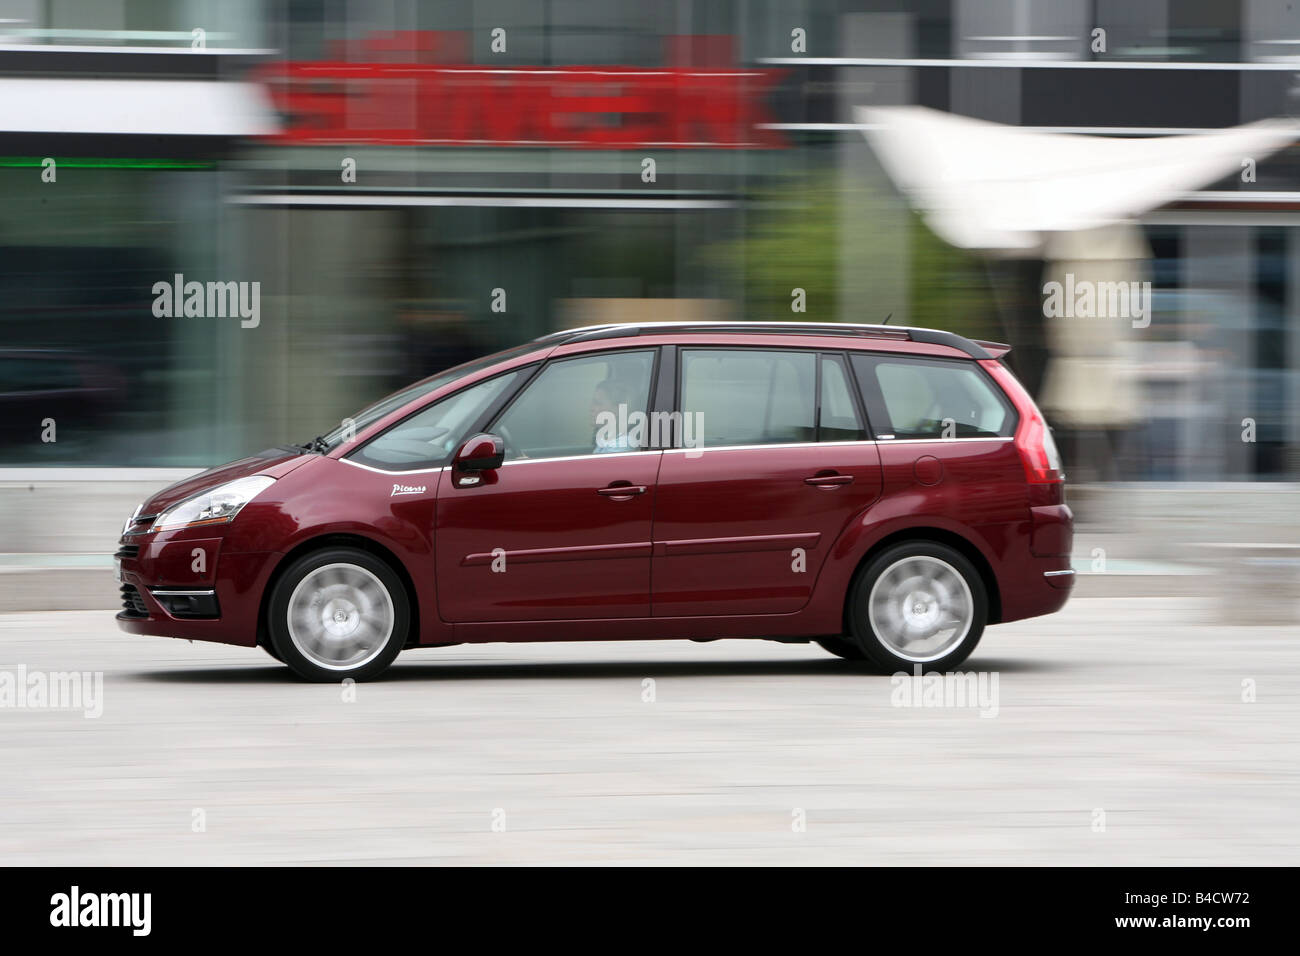 Citroen C4 Piapprox.so HDi 135 Exclusive, model year 2006-, ruby colored, driving, side view, City - Stock Image